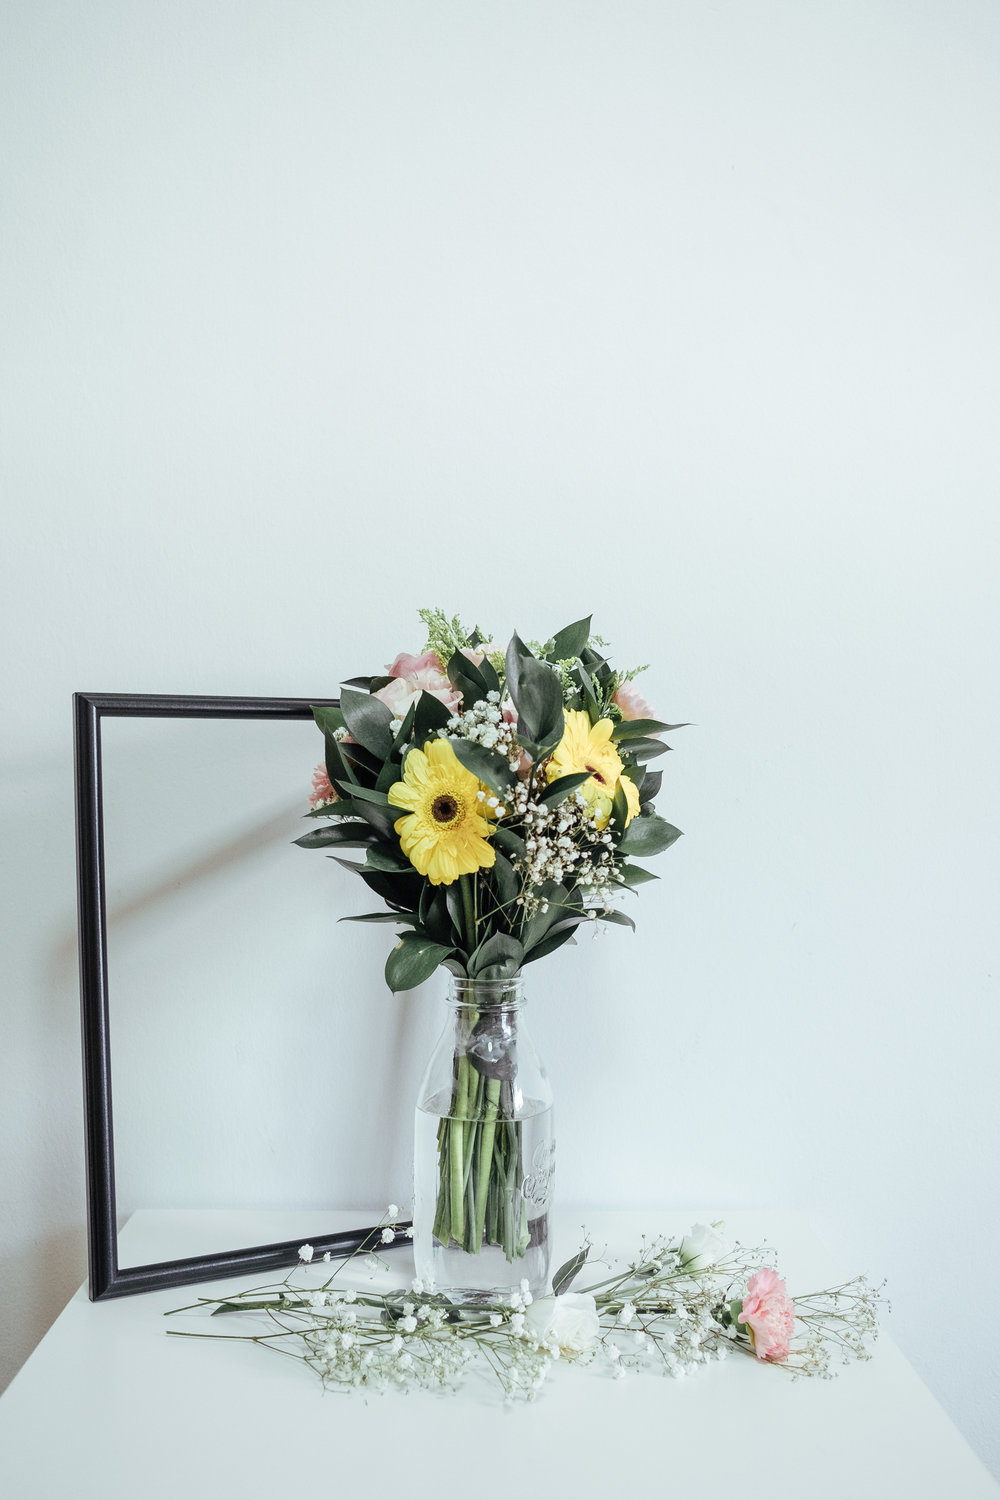 abetterflorist-flowers-photoshoot-11